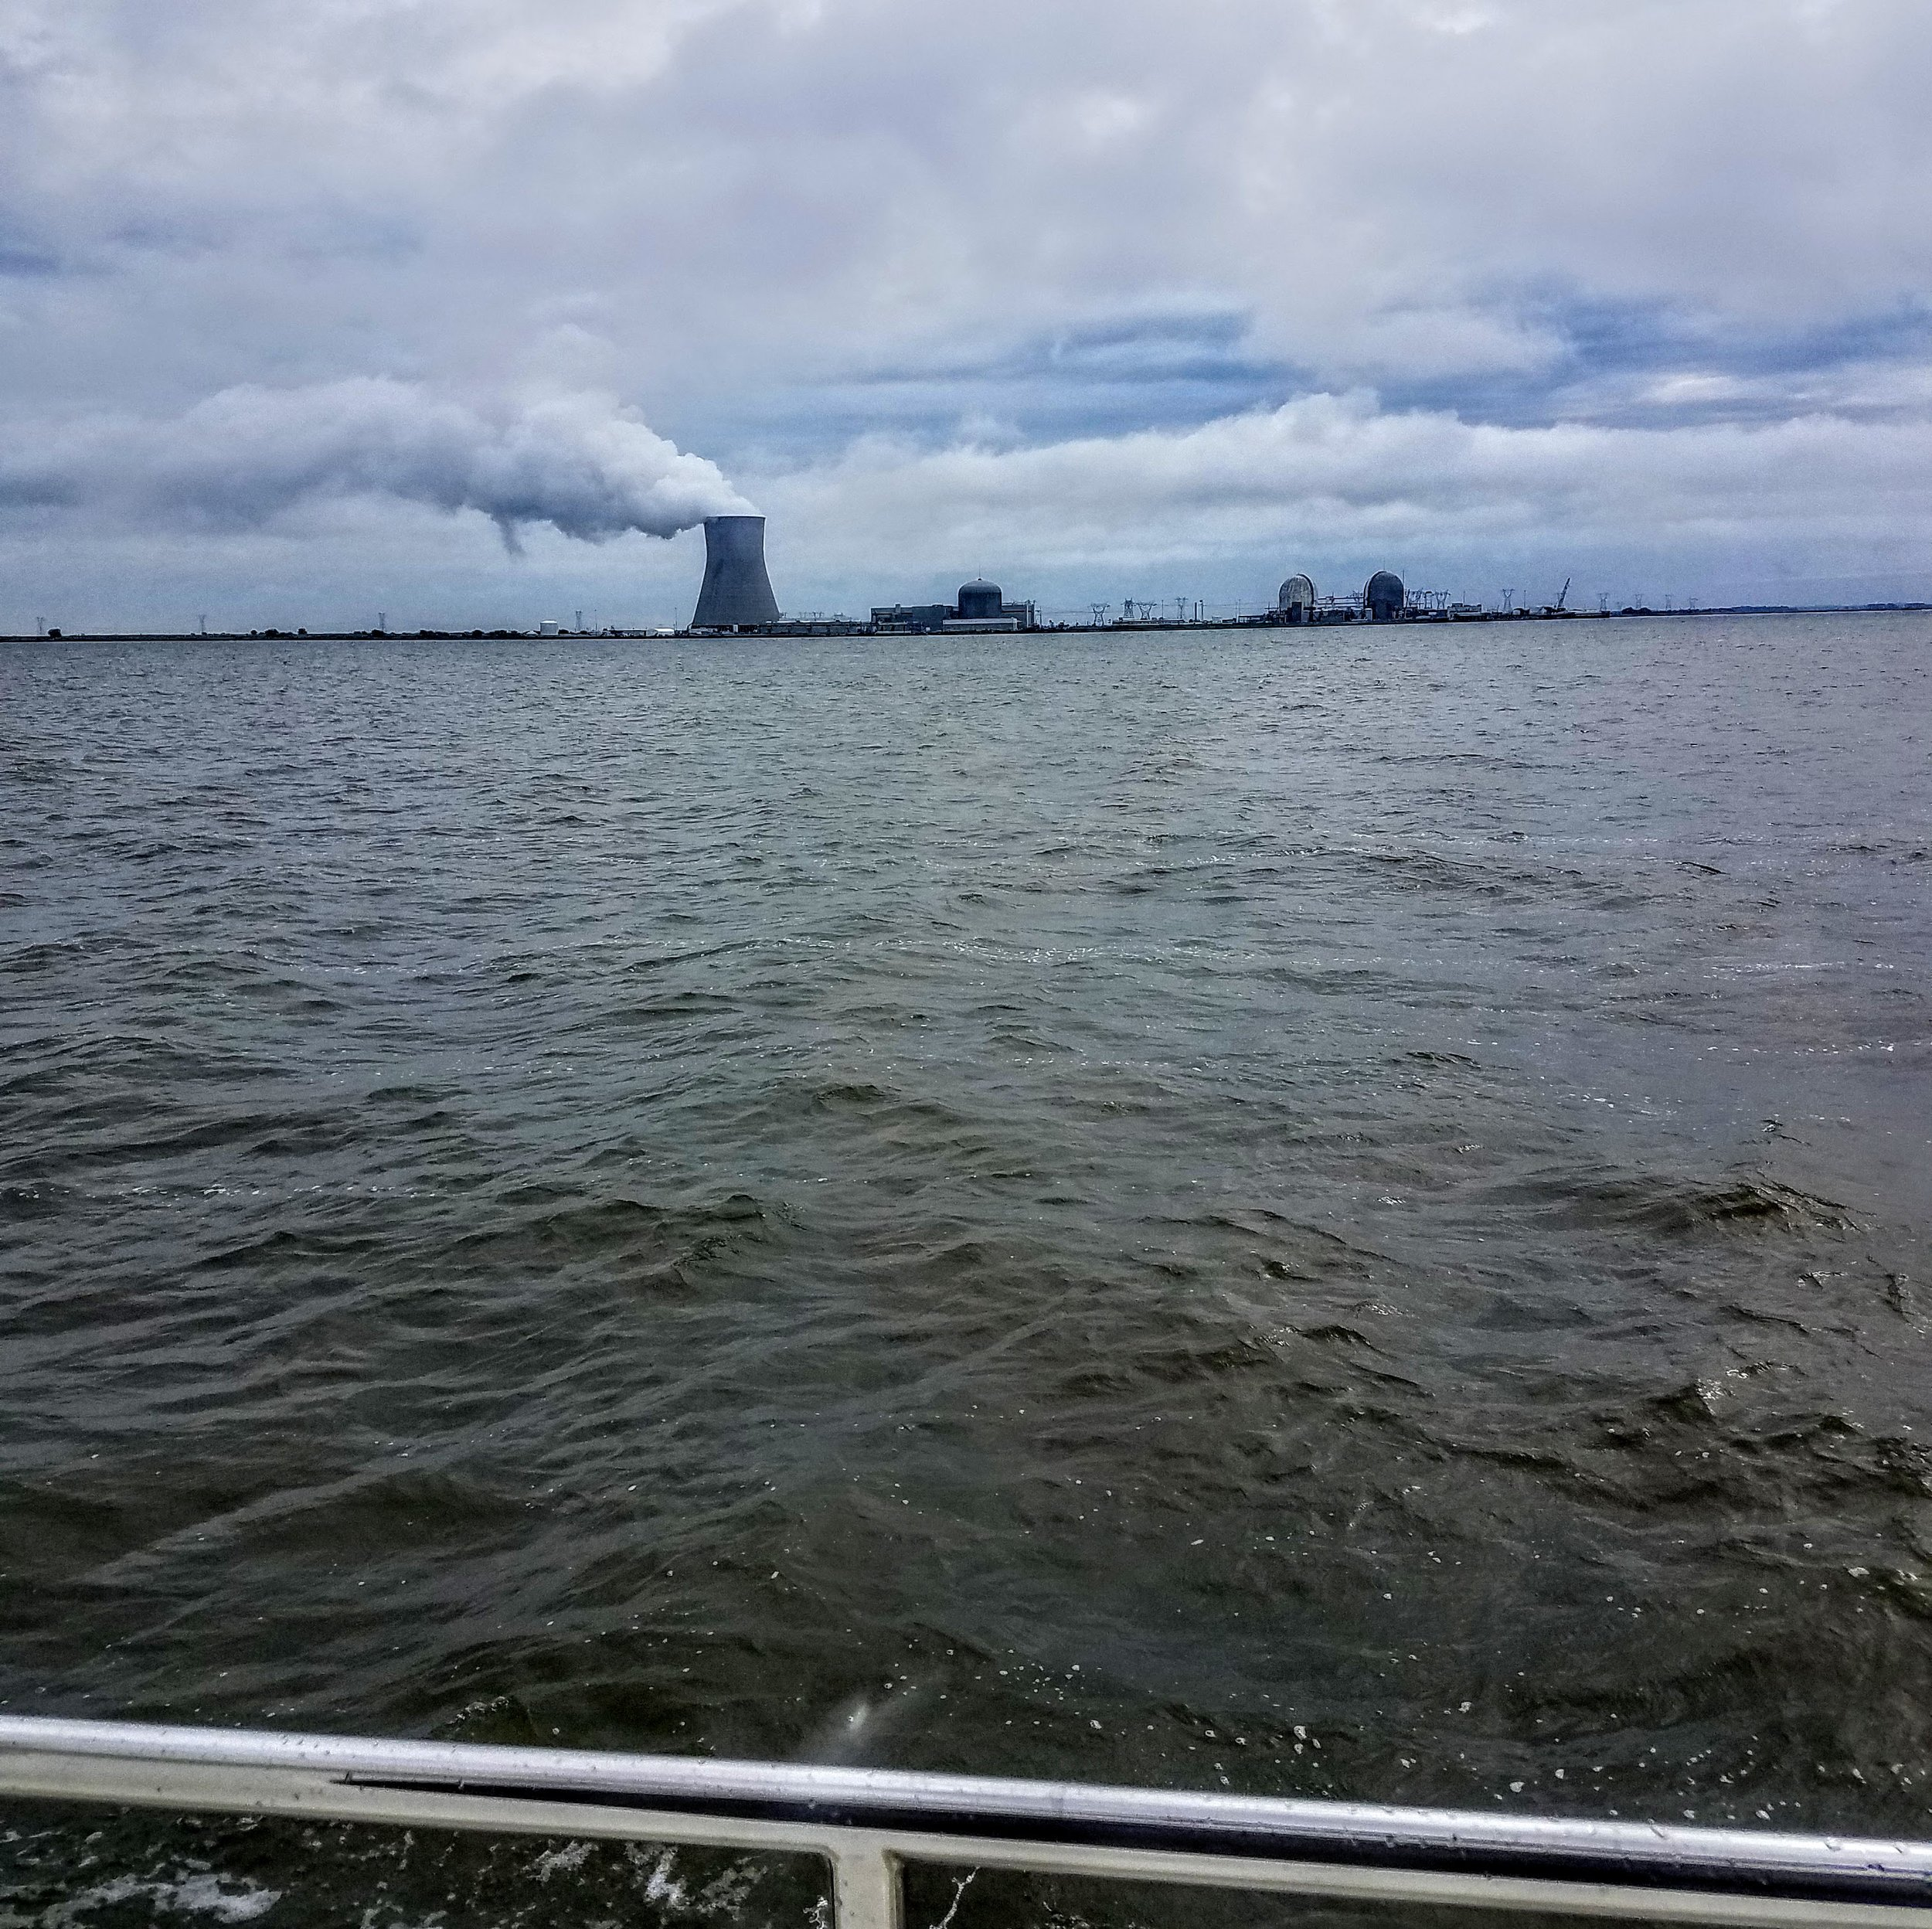 The Delaware River may not be scenic but it is interesting…nuclear power plant.